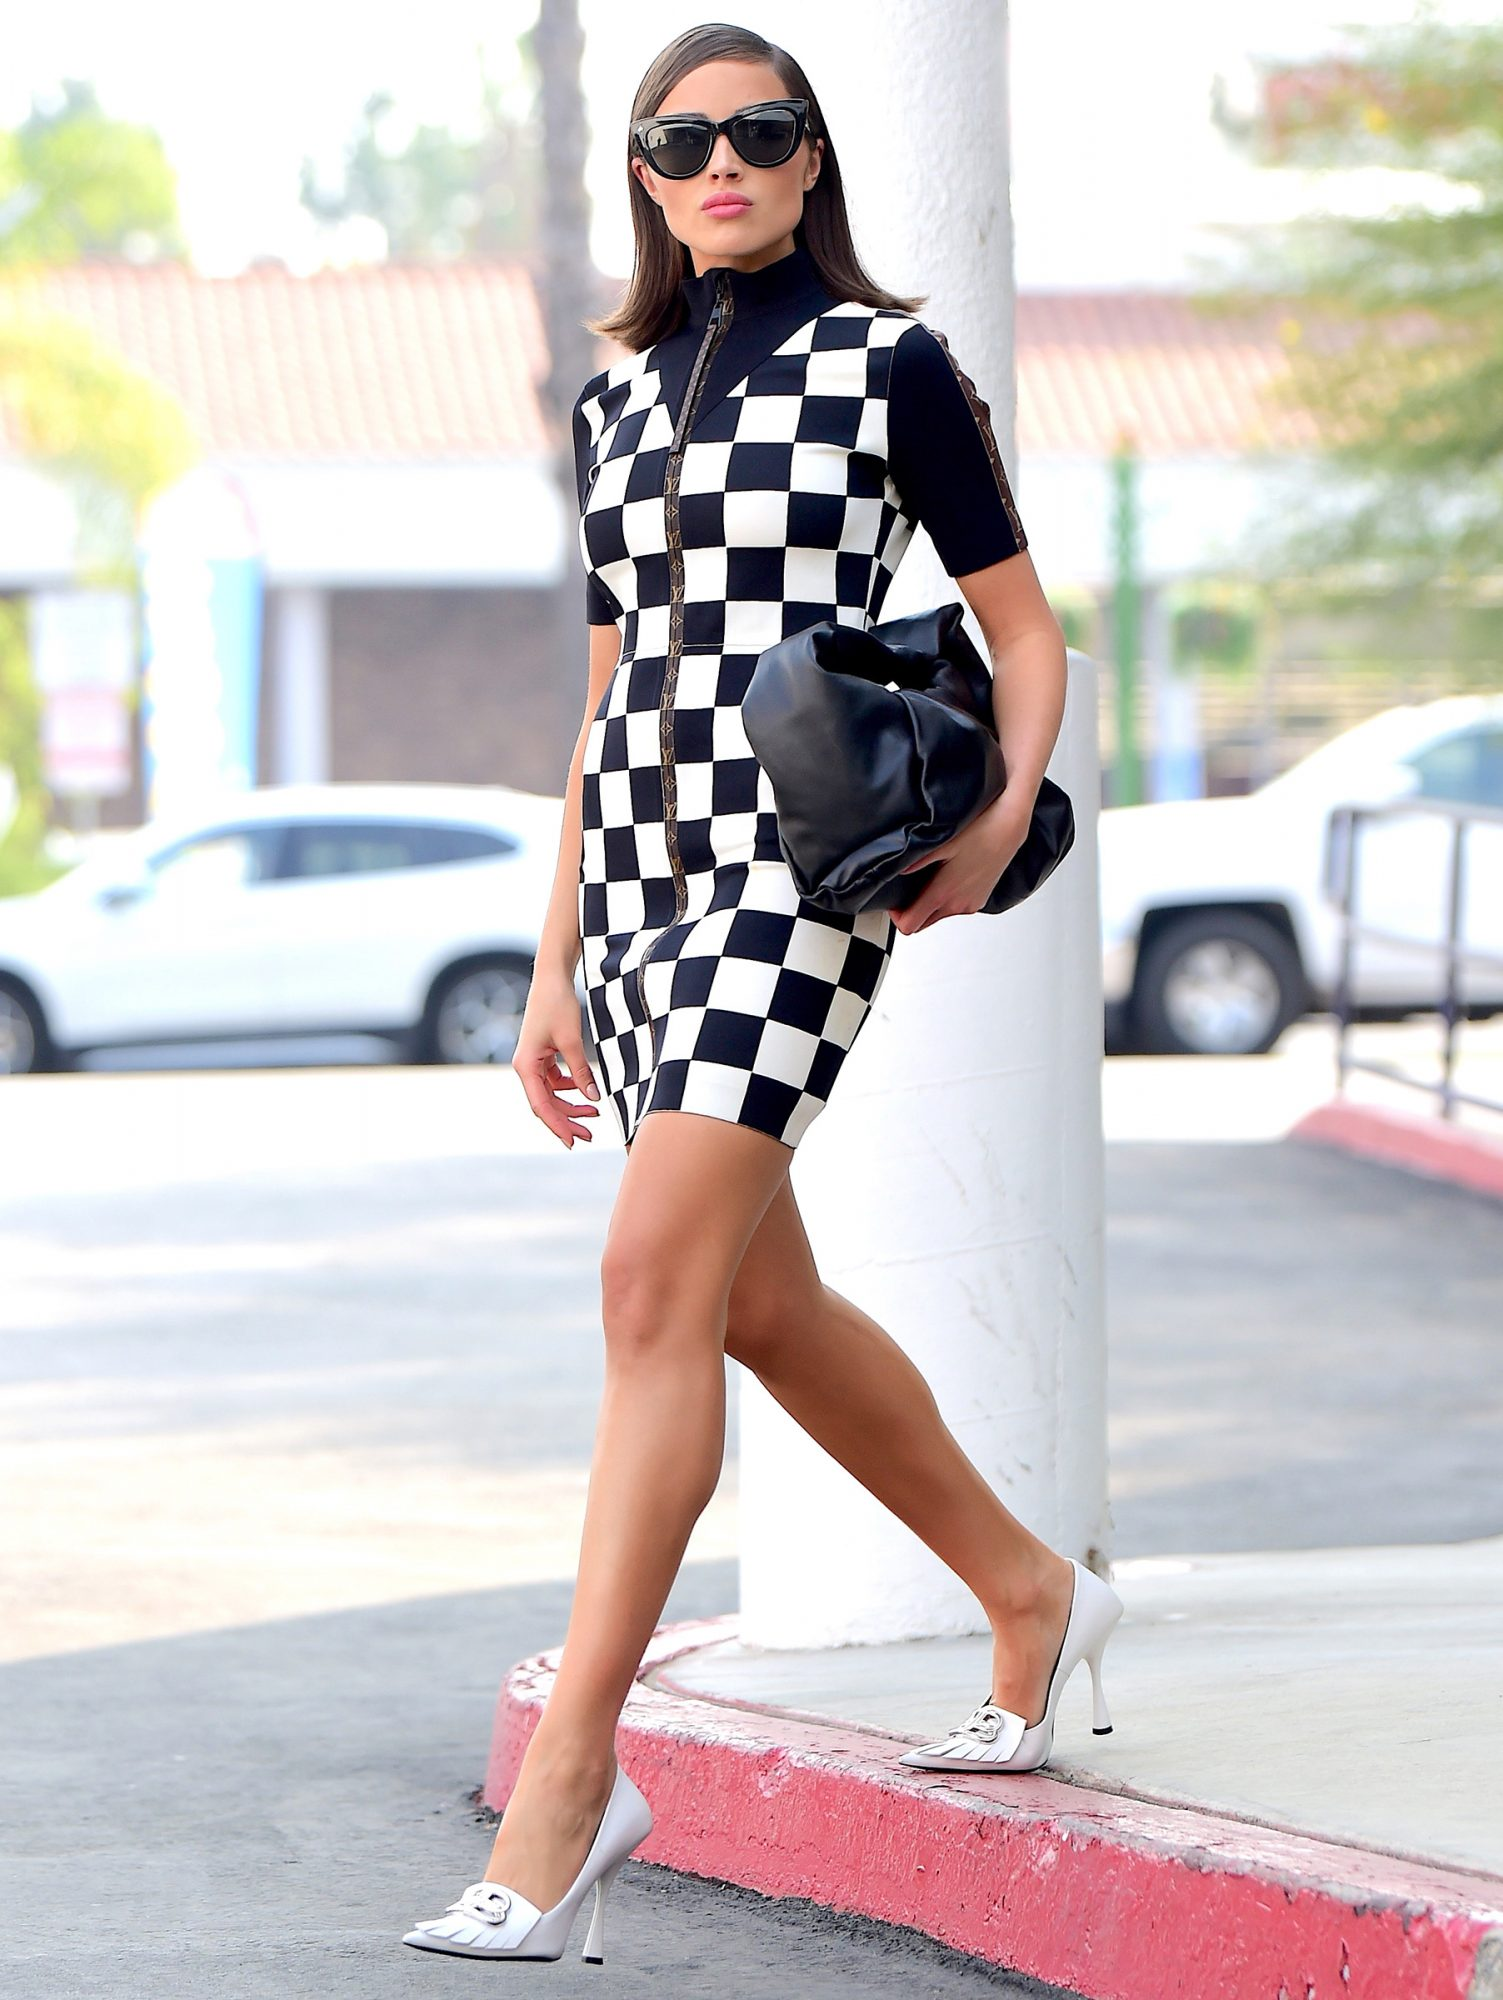 Olivia Culpo Checks All Of The Right Boxes in Louis Vuitton Dress After Business Meeting In LA